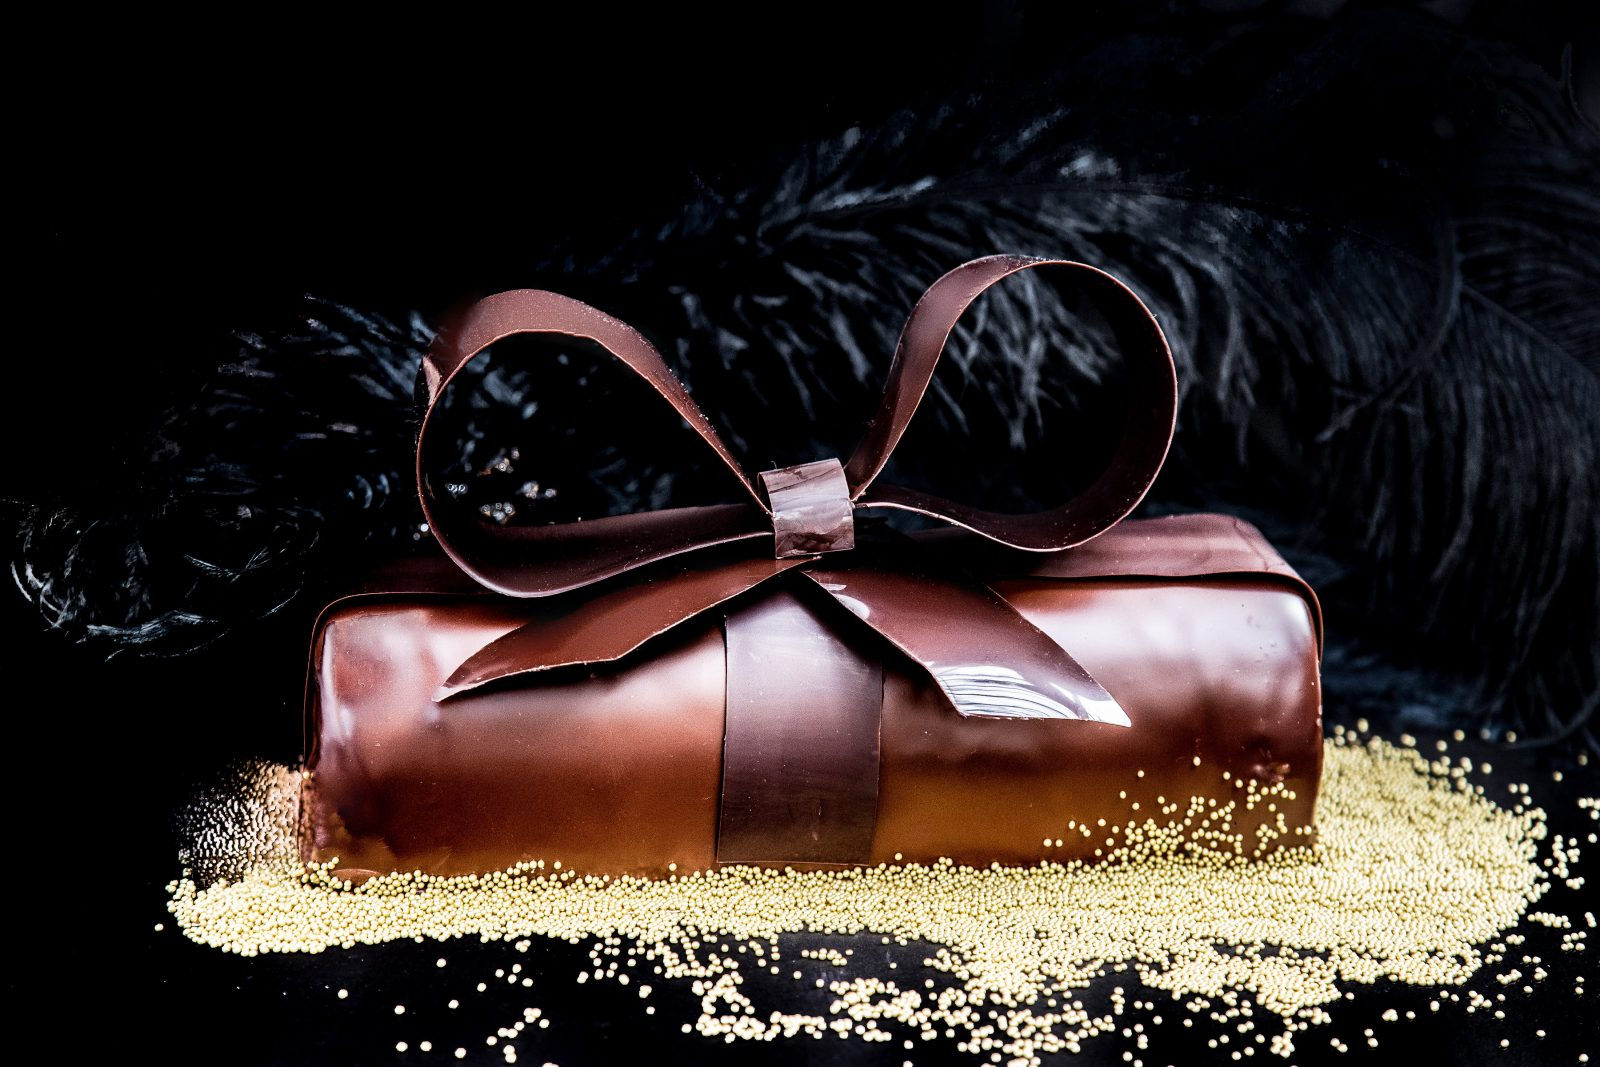 chocolate caramel cadeaux buche de noel thierry chocolates. Black Bedroom Furniture Sets. Home Design Ideas